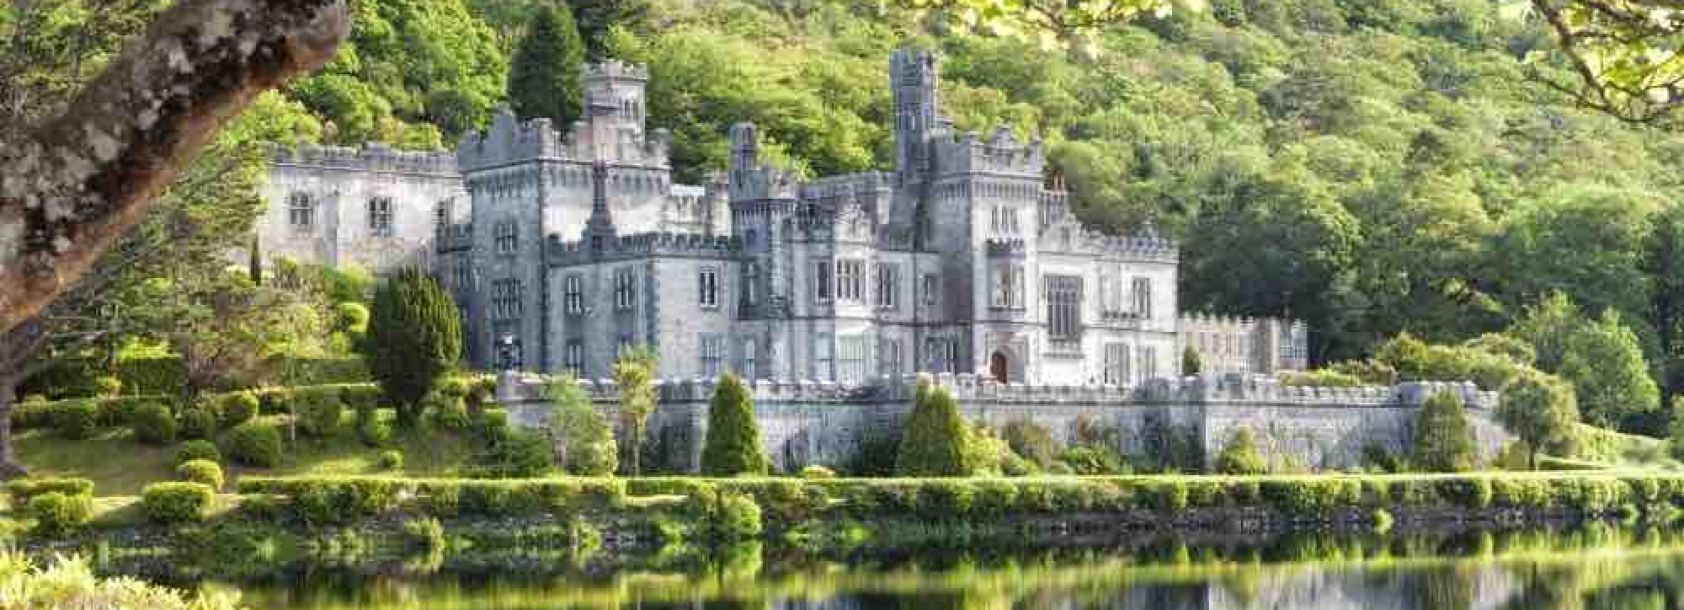 Ireland_Kylemore Abbey in Connemara, County Galway